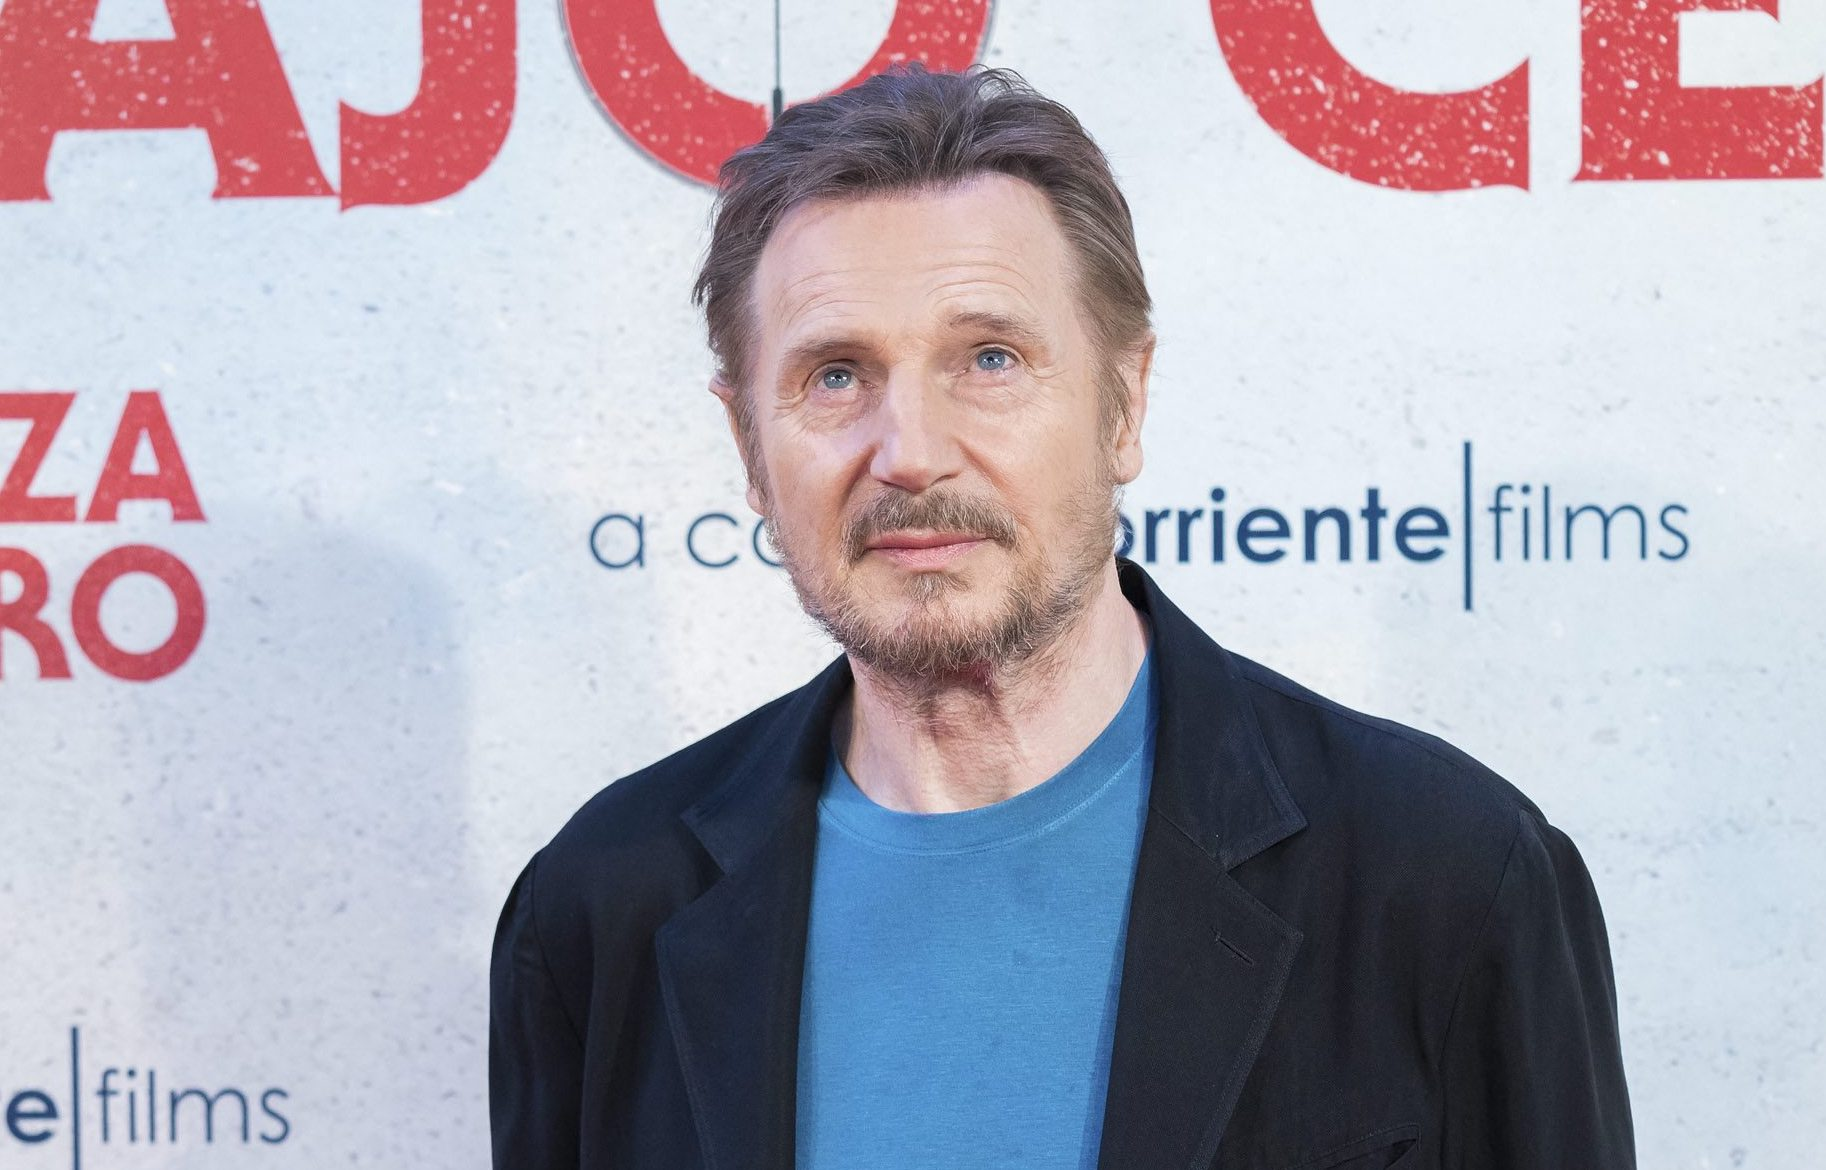 Liam Neeson Introduces New Movie In Person During NYC Theatrical Premiere Of 'The Marksman'